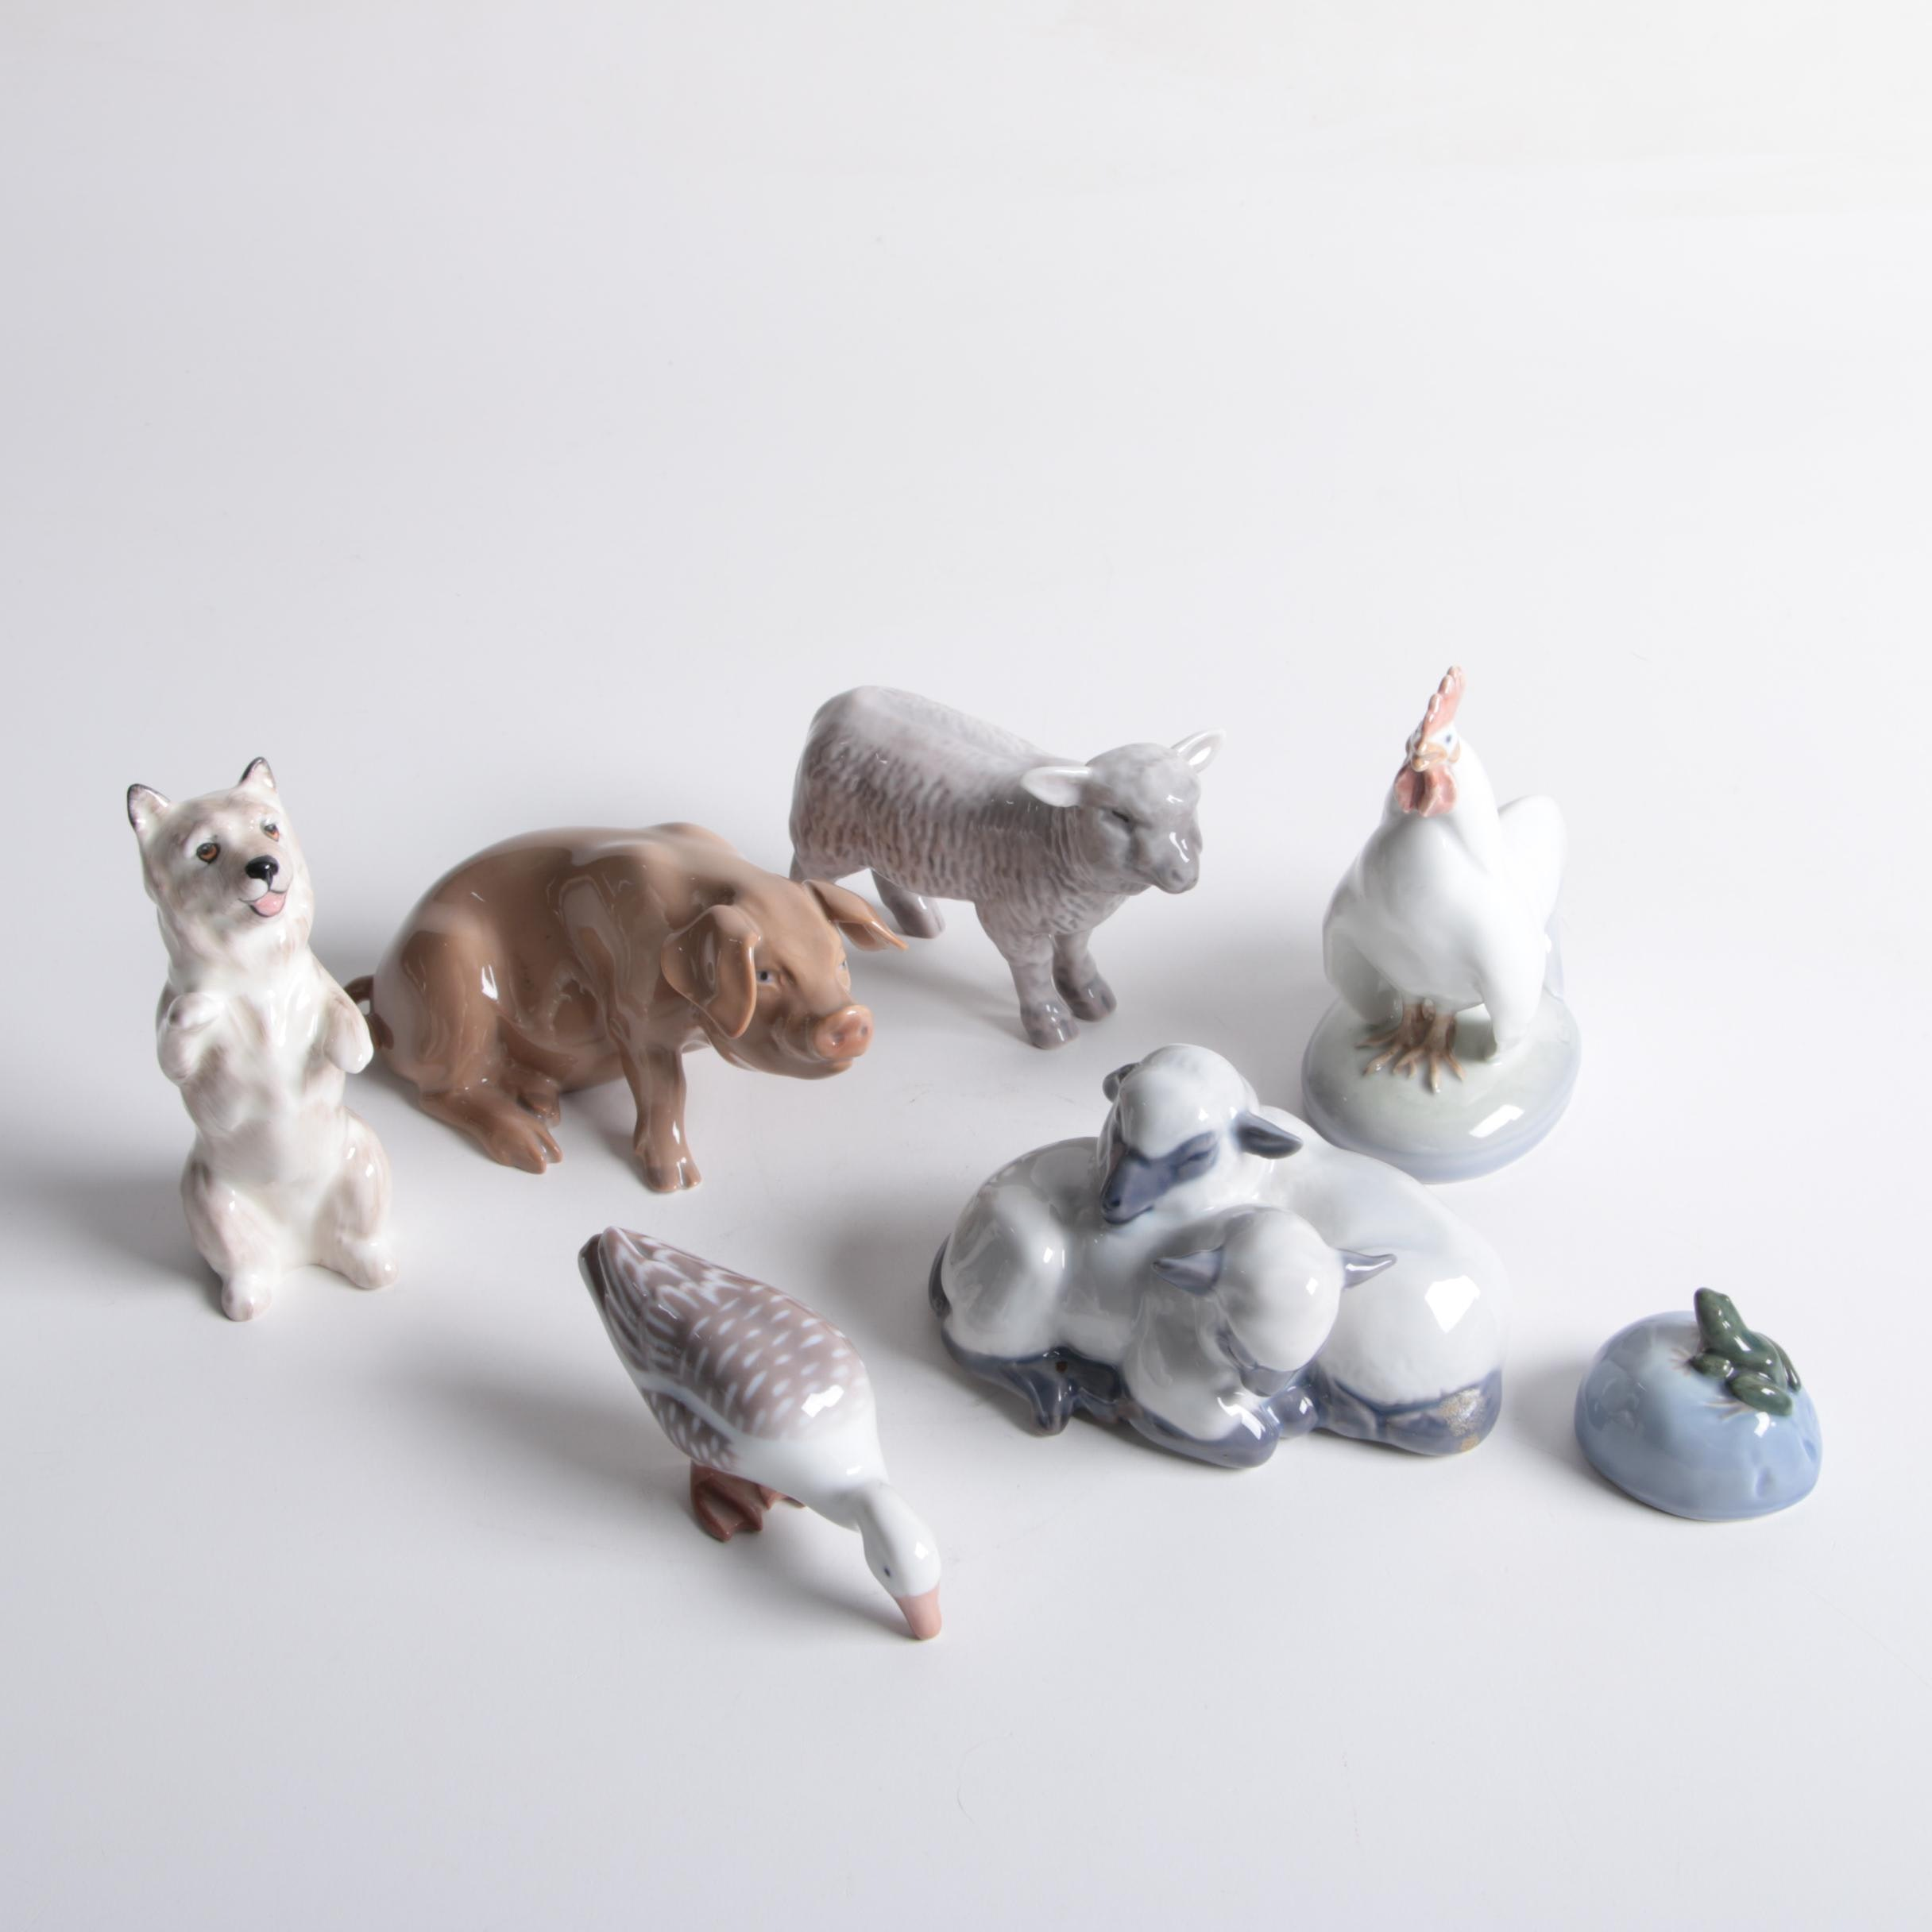 Assortment of Royal Copenhagen and B&G Porcelain Animal Figurines